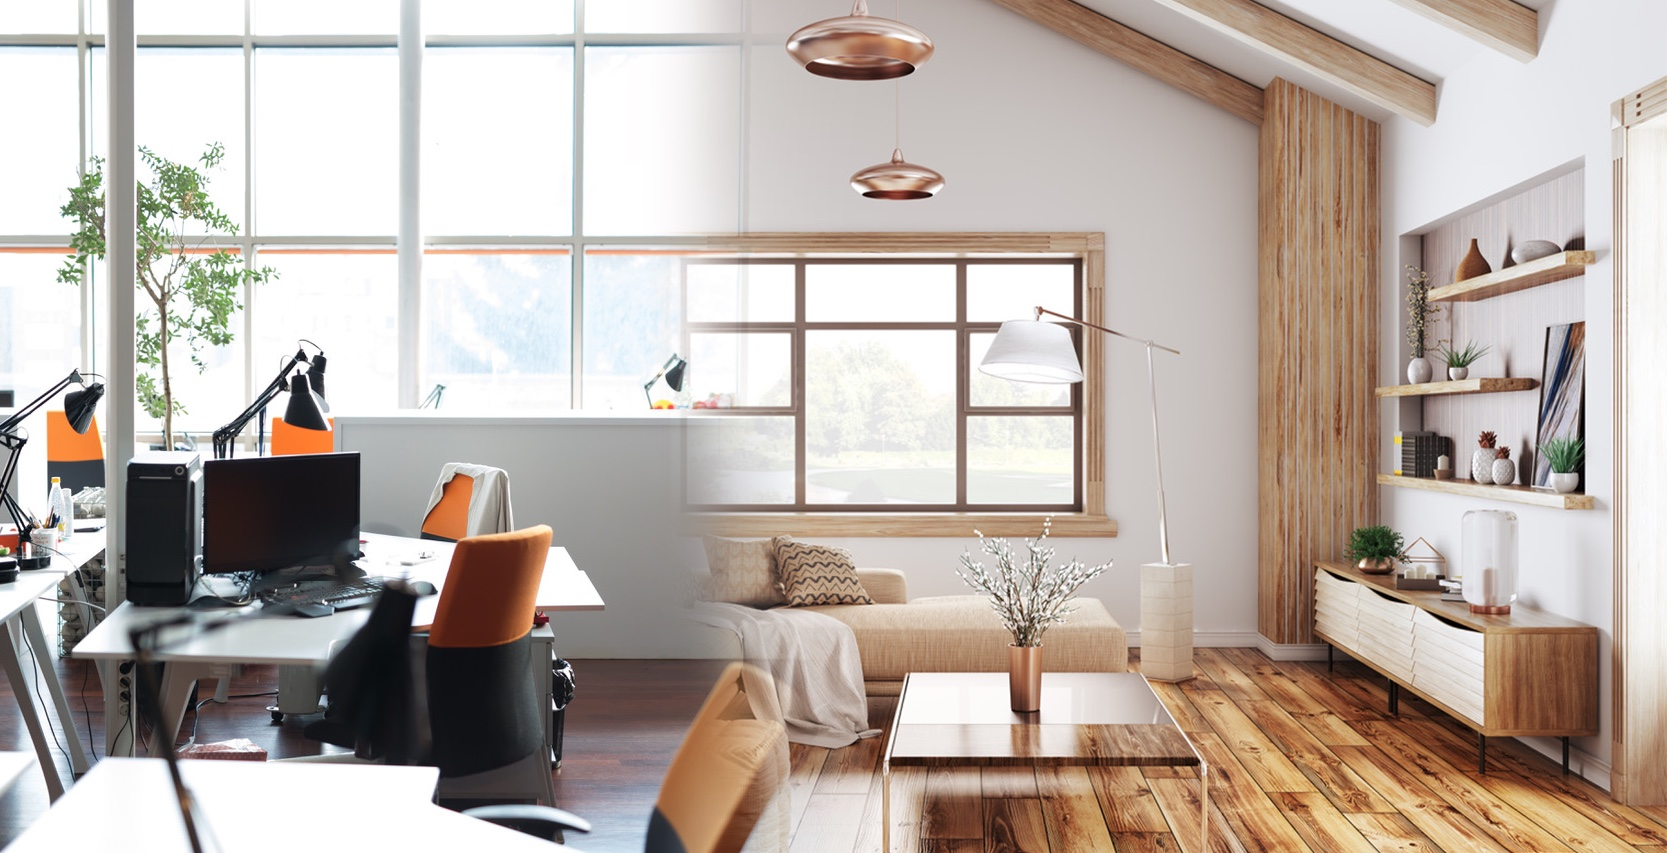 Five Common Misconceptions About Architectural Window Films - Home and Commercial Window Tinting in Cadillac, Grand Rapids, Traverse City and throughout Western Michigan.